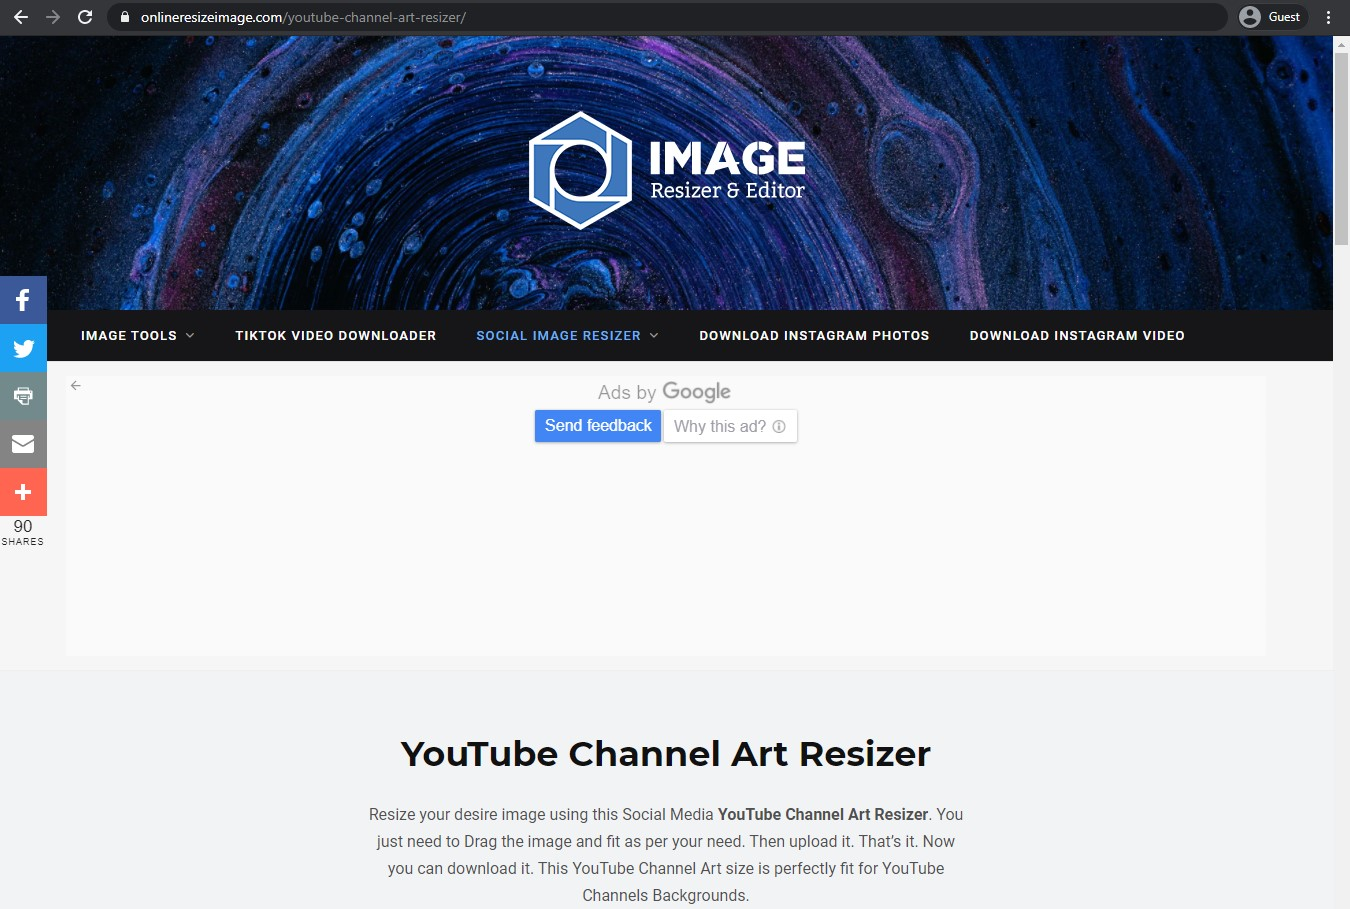 youtube channel art resizer landing page